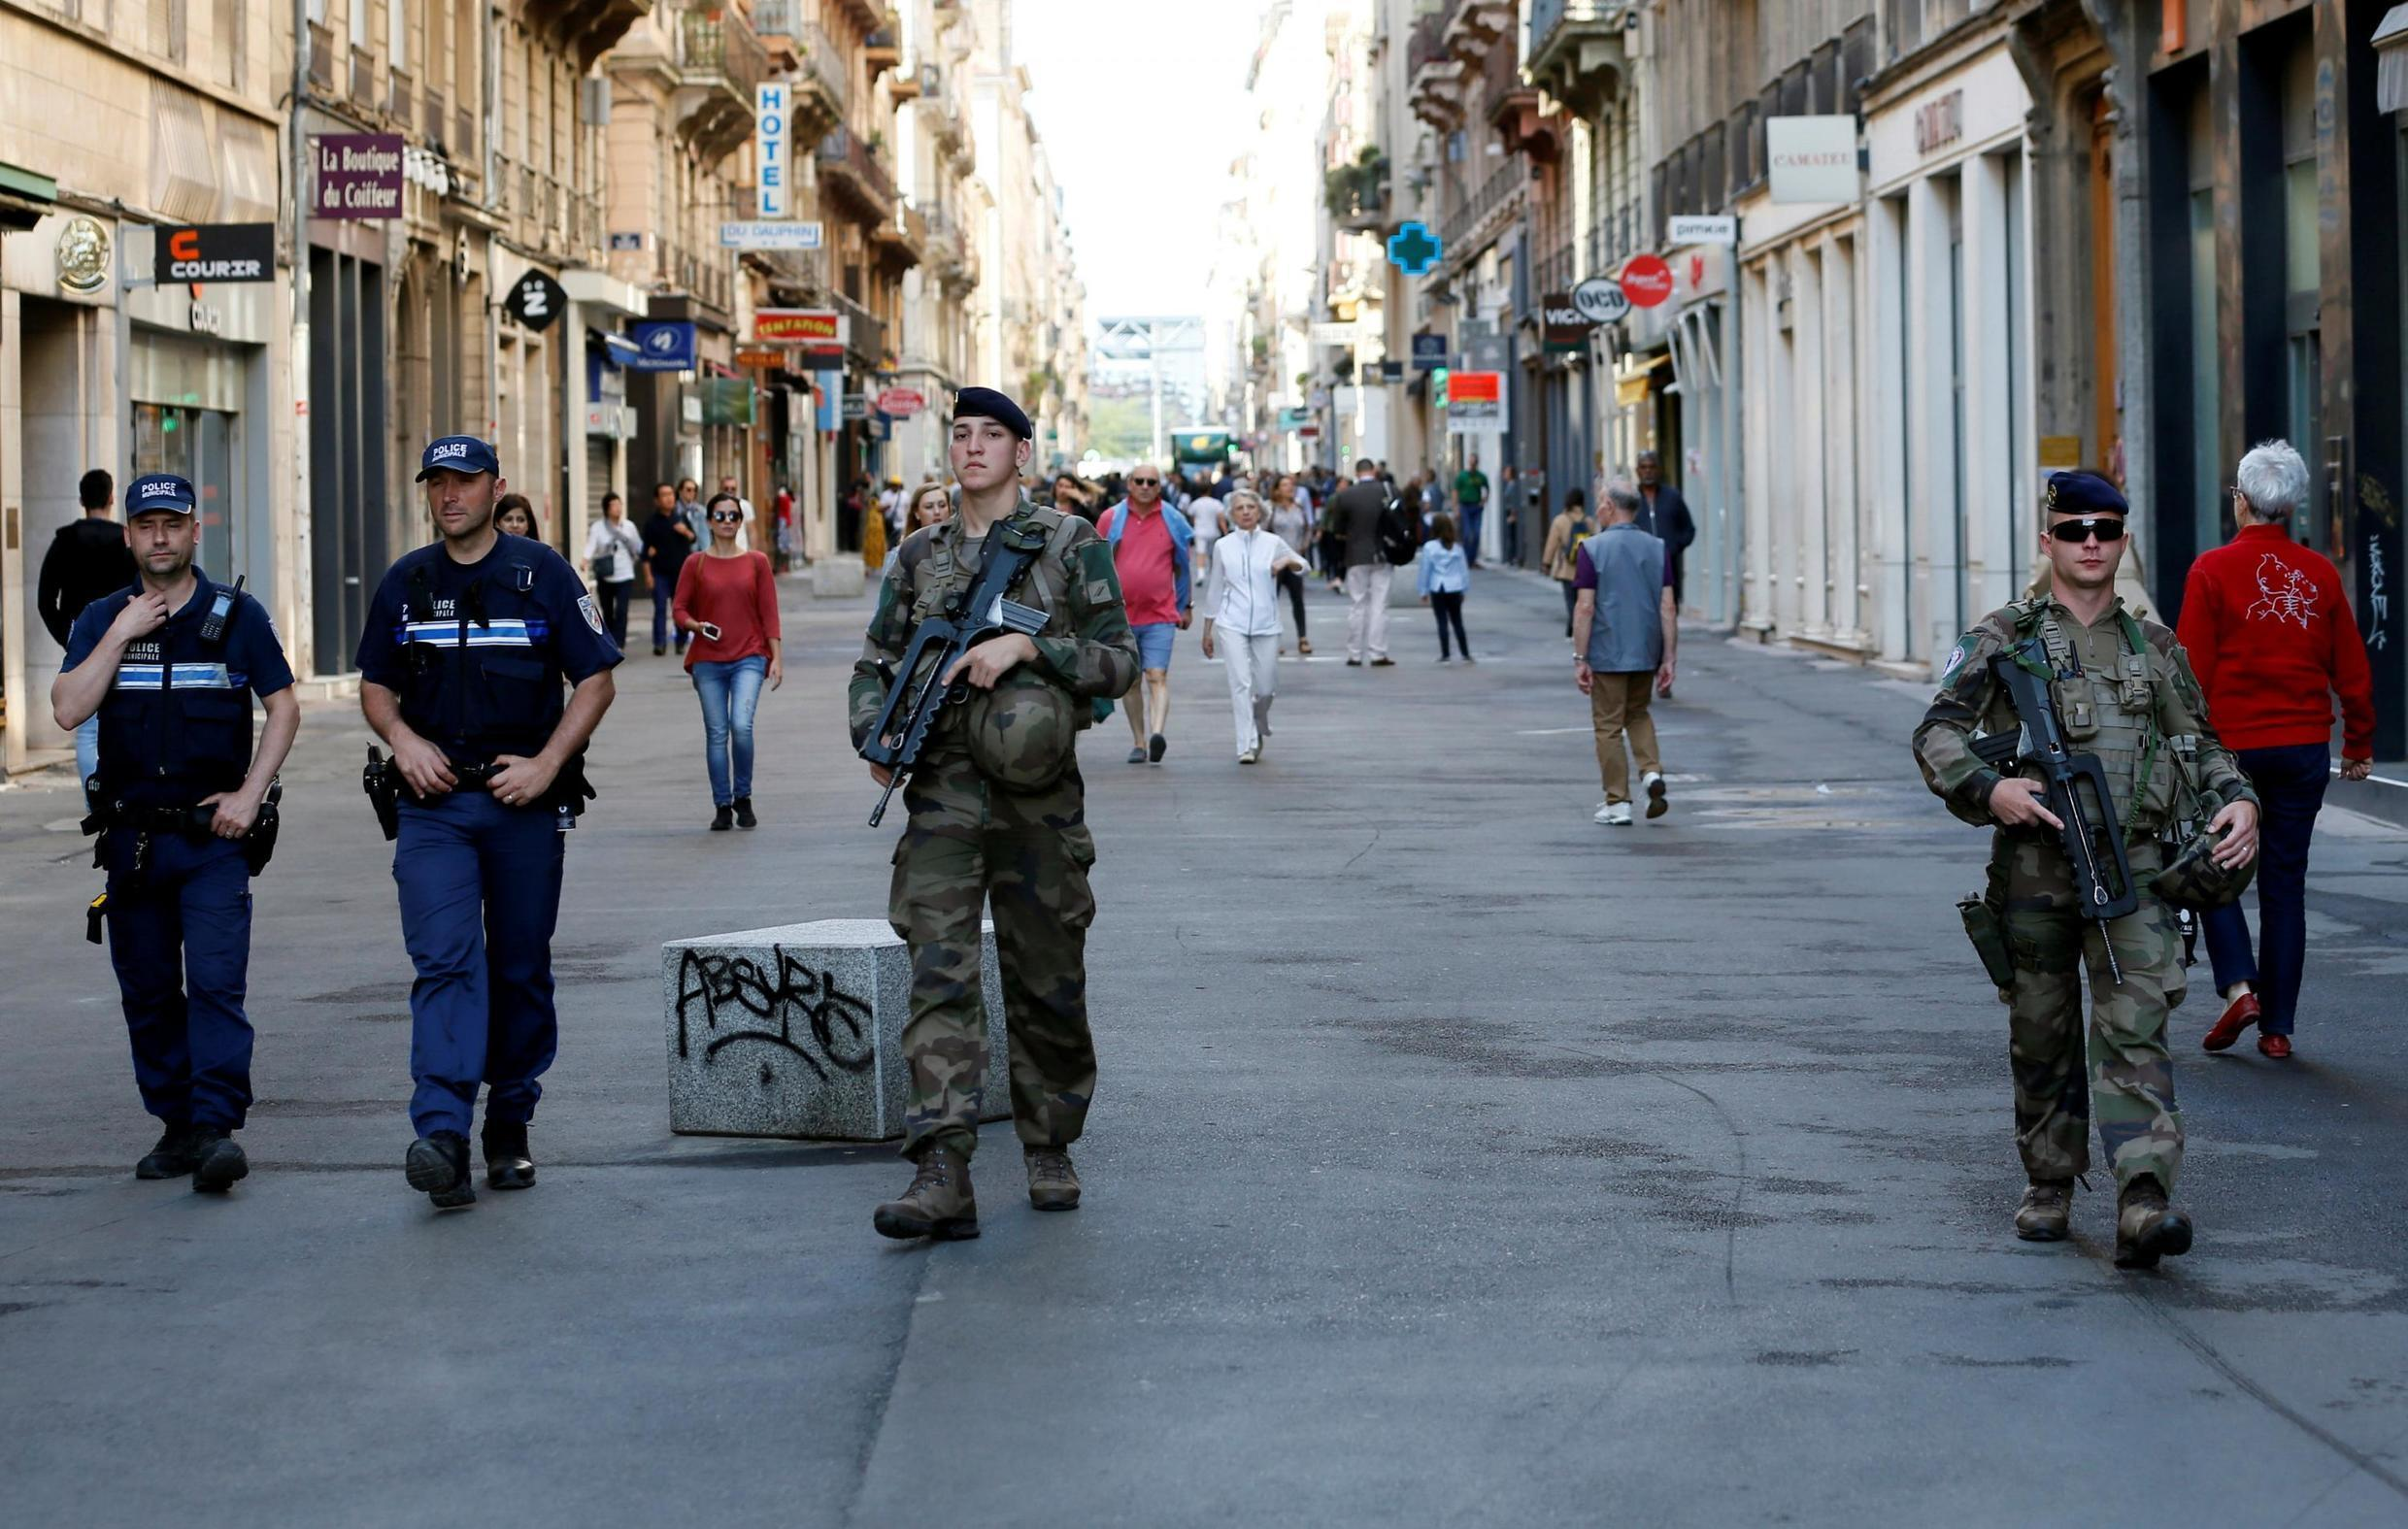 Police and army patrol the streets during the manhunt of a suspected suitcase bomber in central Lyon, France, 25 May 2019.